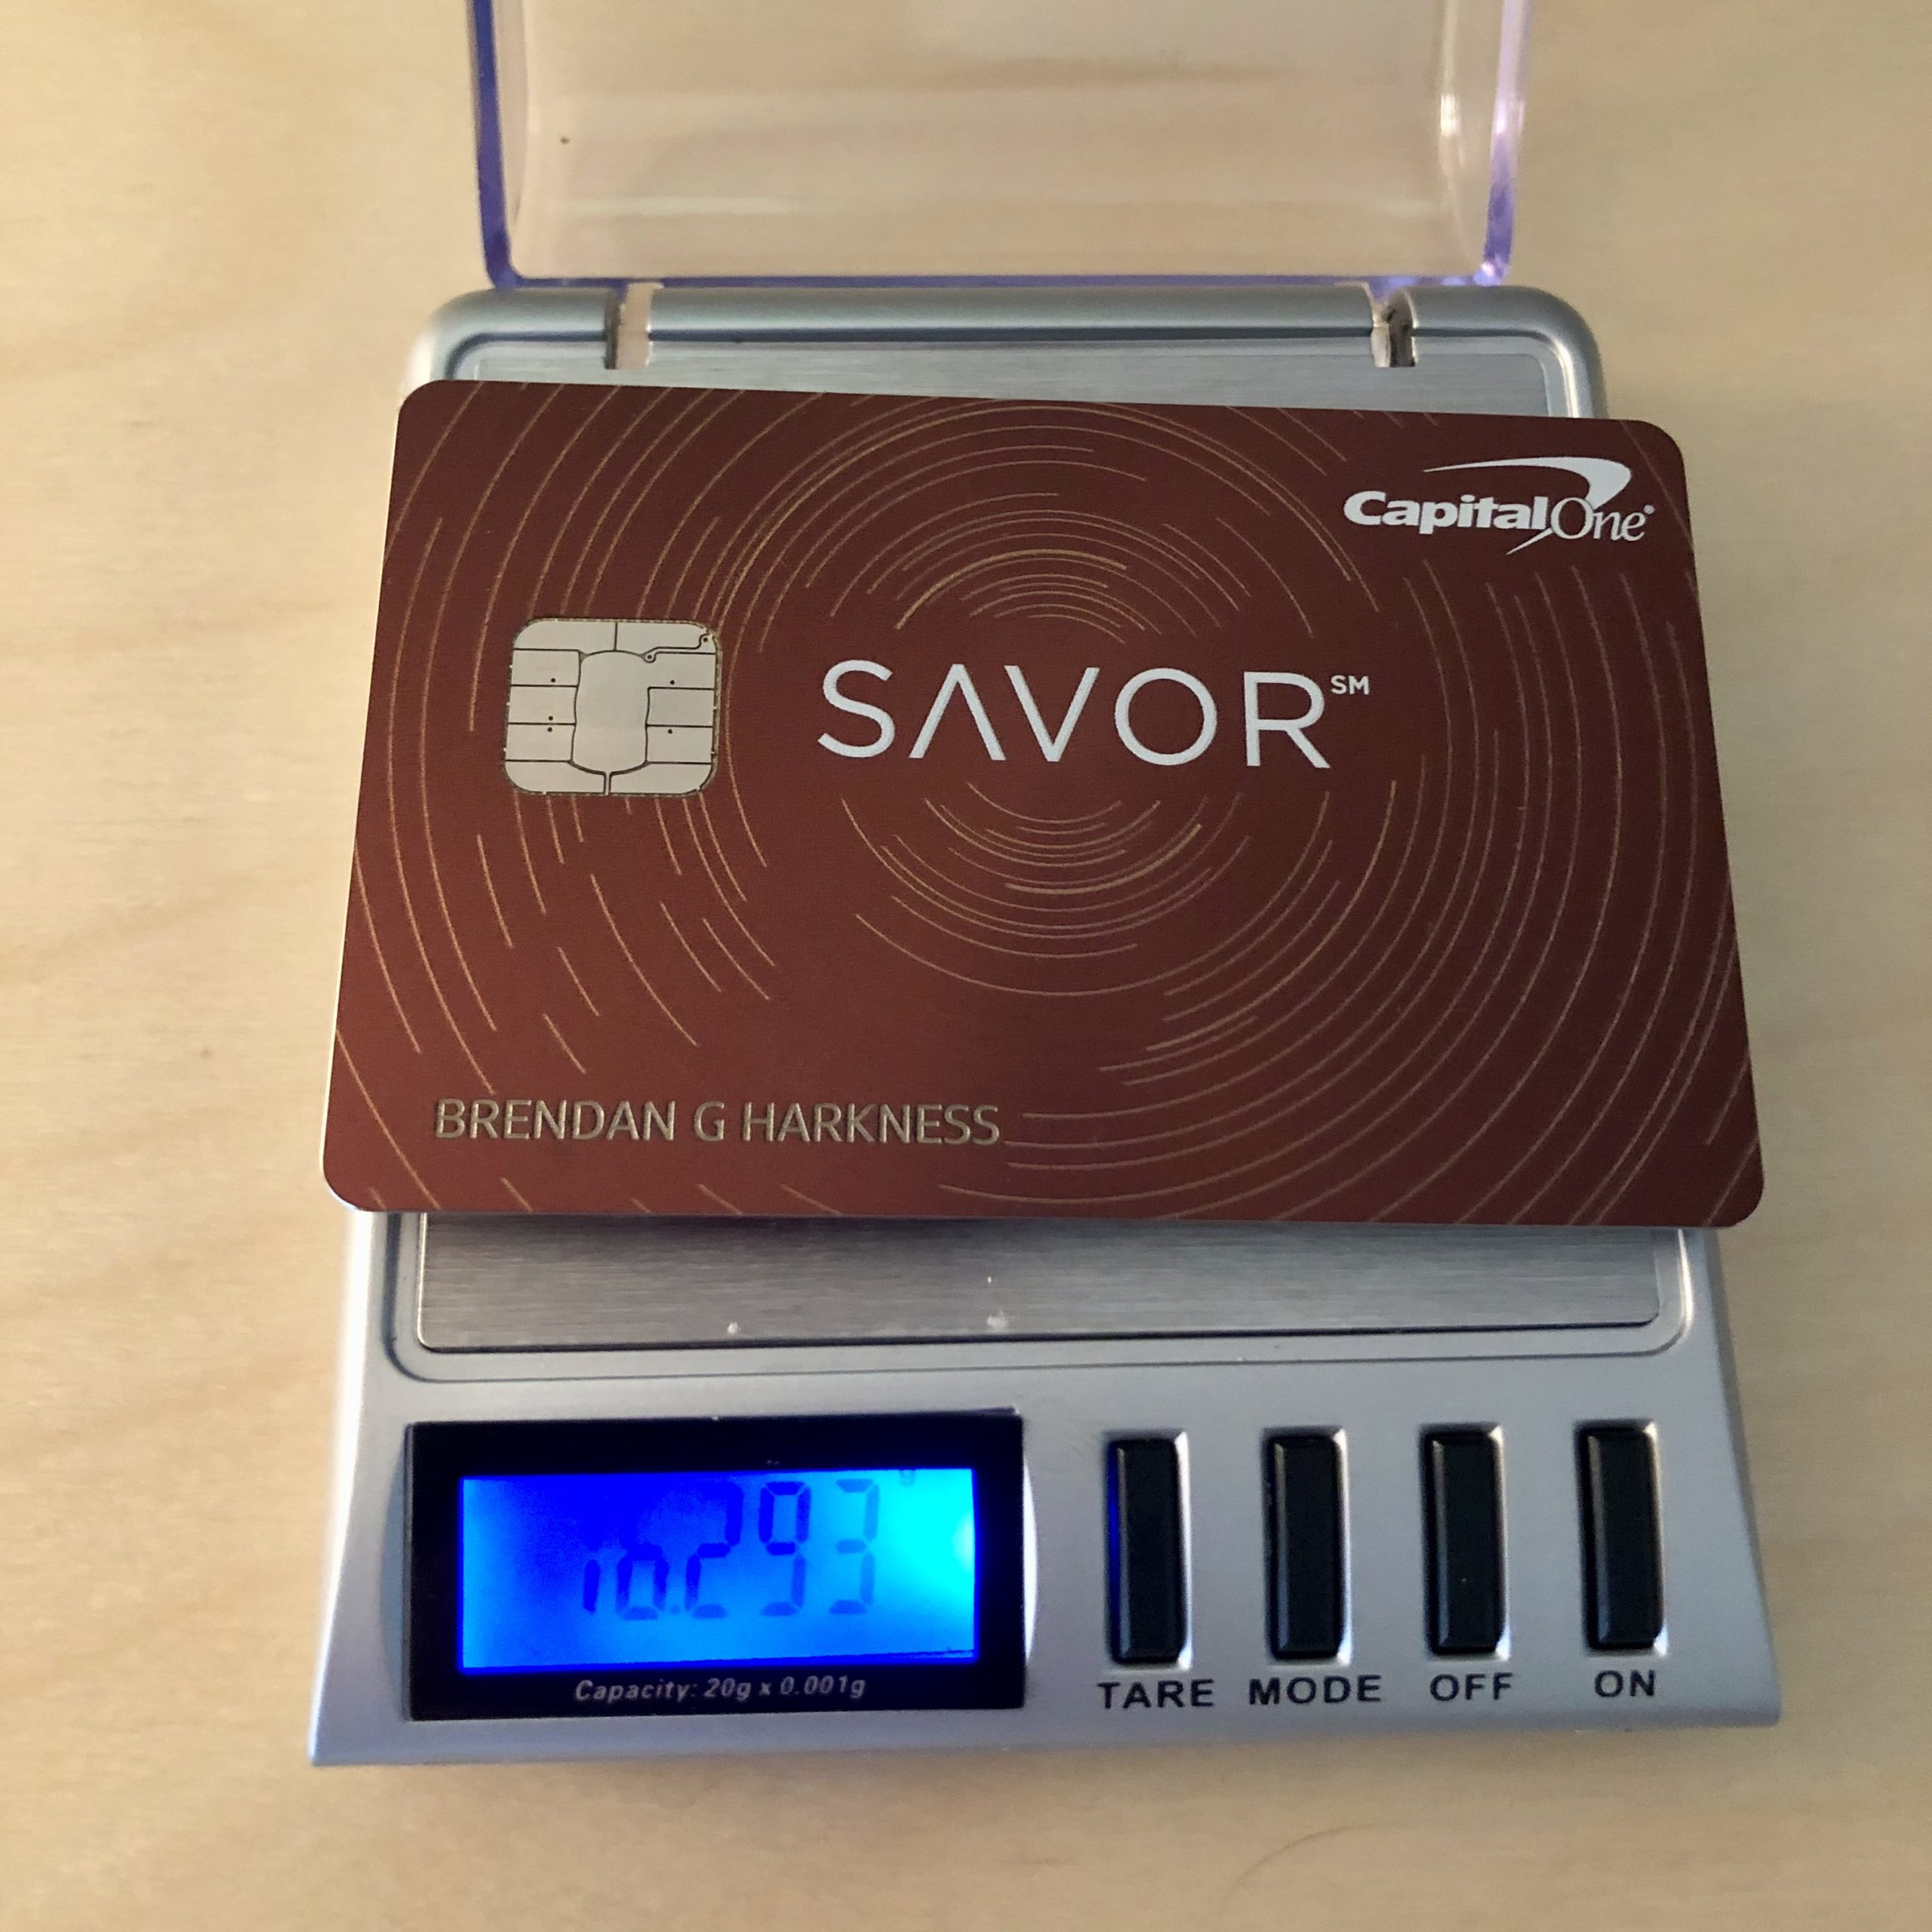 26 Metal Credit Cards Available In 2020 Credit Card Insider,Simple Blue And White Room Design